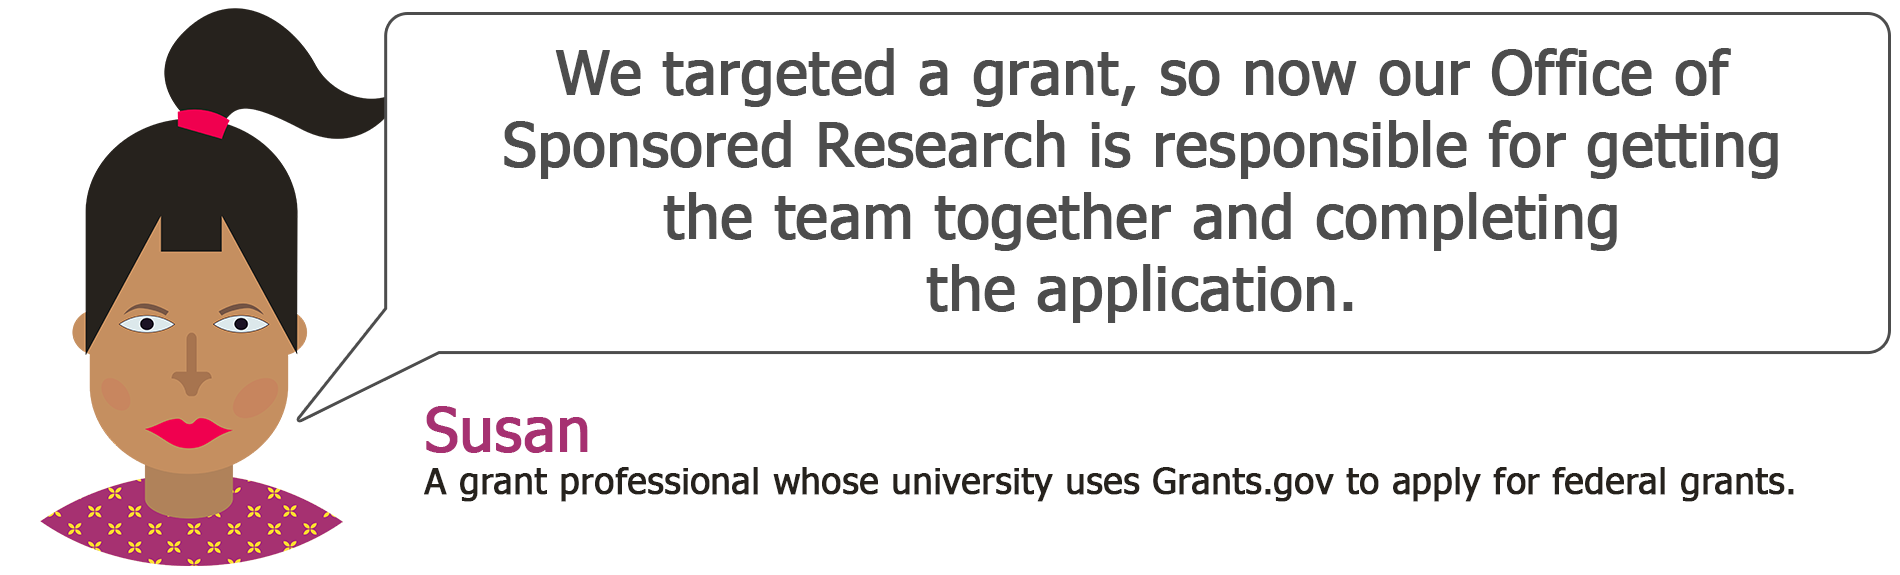 Susan user story: We targeted a grant, so now our Office of Sponsored Research is responsible for getting the team together and completing the application.